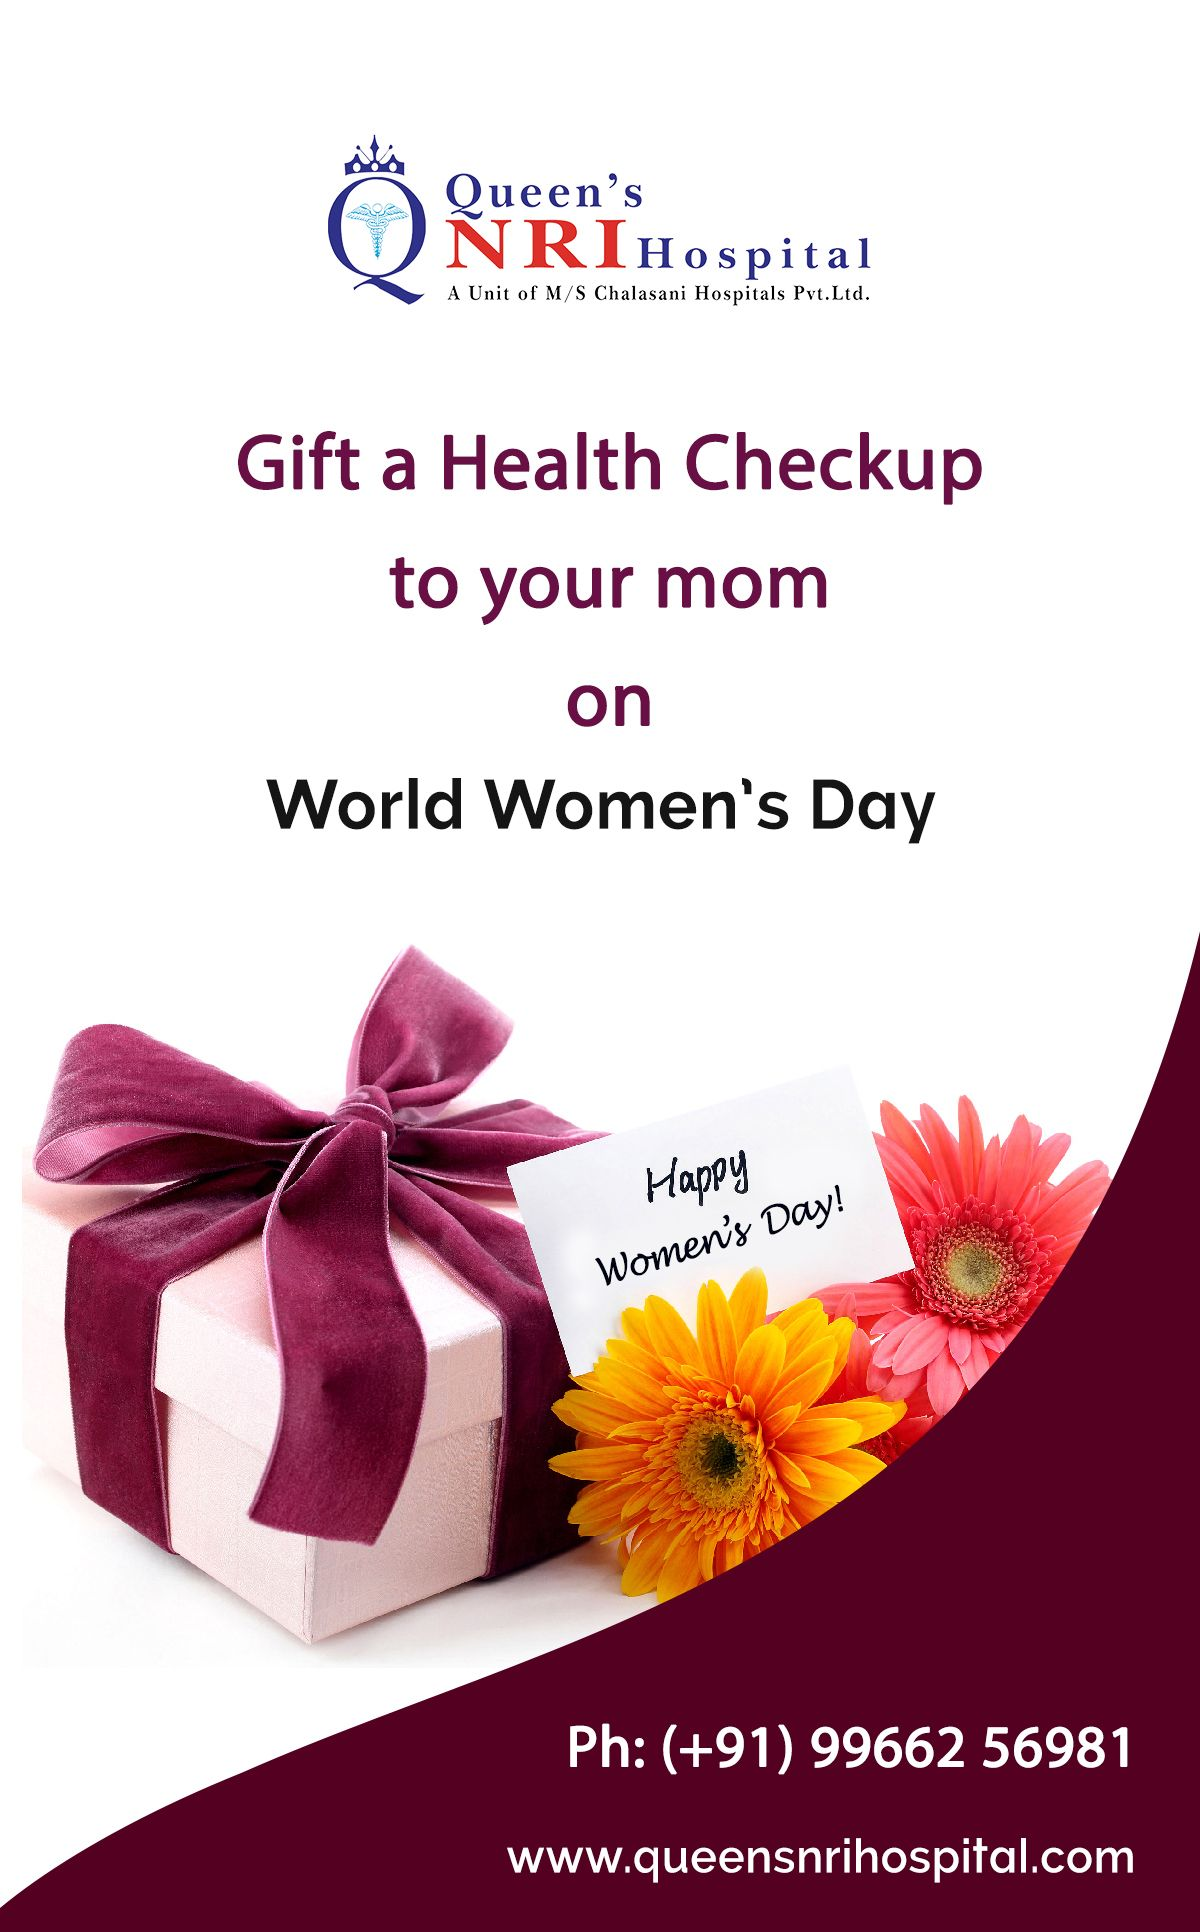 Gift a Health Checkup to your mom on World Women's Day - Queen's NRI ...